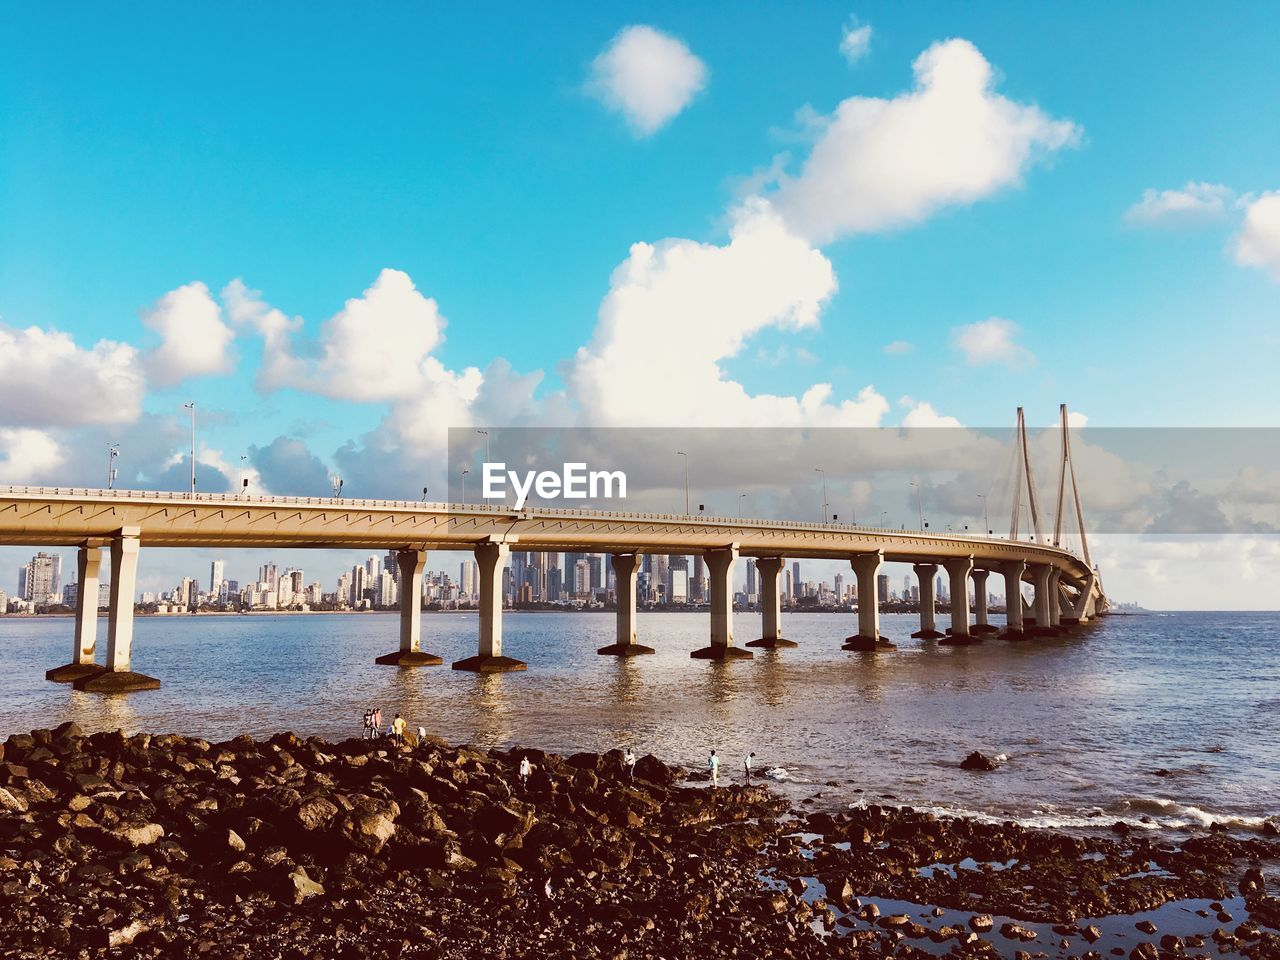 sky, cloud - sky, water, sea, built structure, nature, bridge, architecture, connection, scenics - nature, beauty in nature, beach, tranquil scene, day, no people, bridge - man made structure, tranquility, pier, land, architectural column